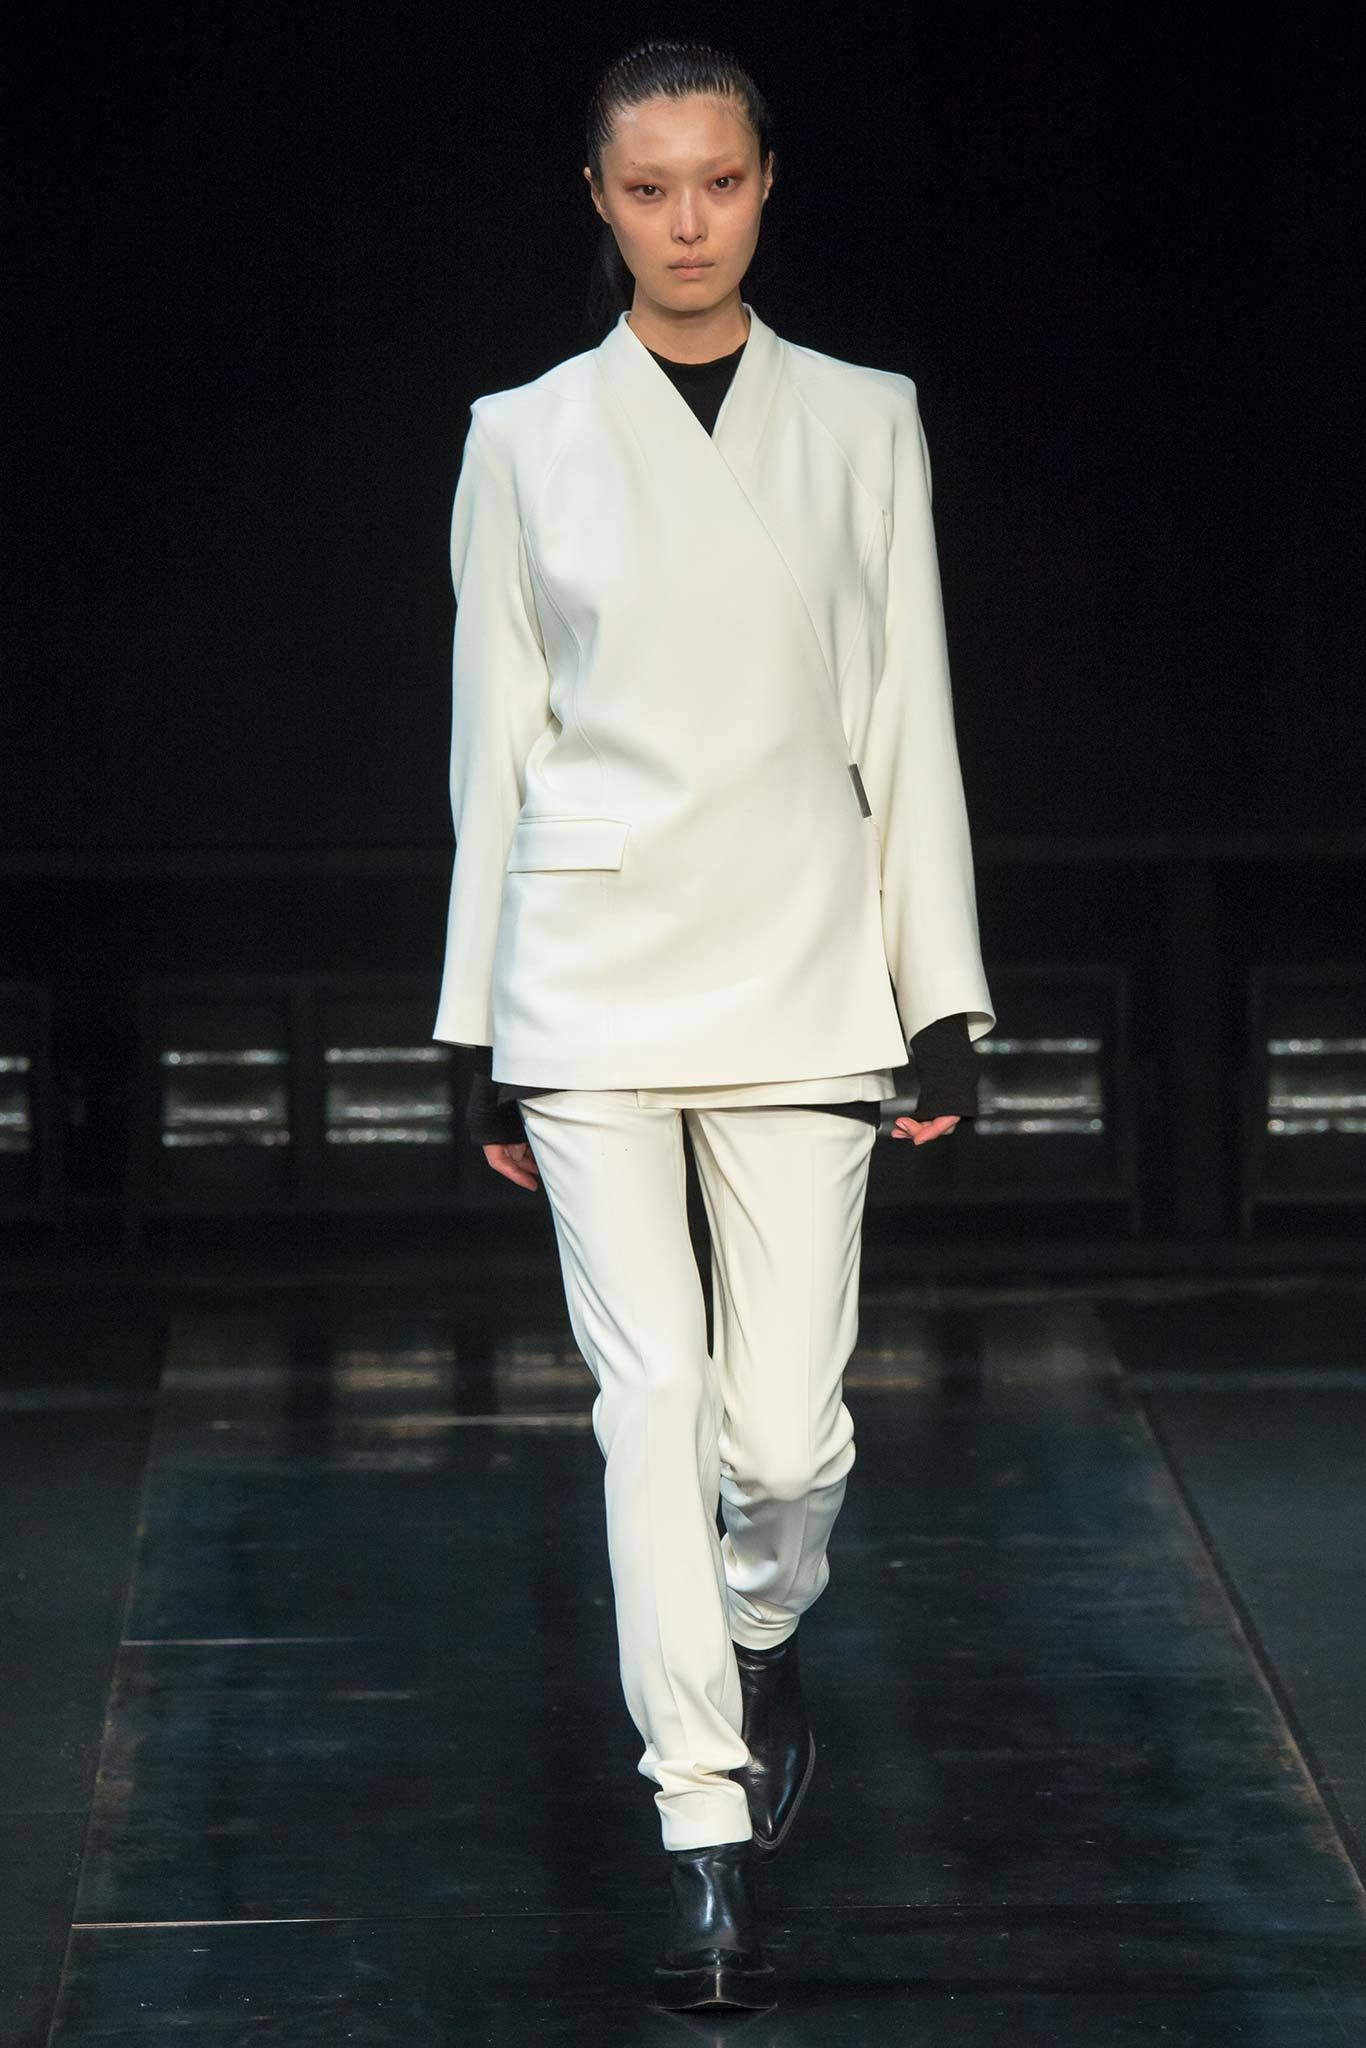 StyleAndMinimalism | Collection Best Bits | What To Wear From AW14 | Helmut Lang AW14 | Cream Suit, Wrap Jacke, Slim Fit Trousers